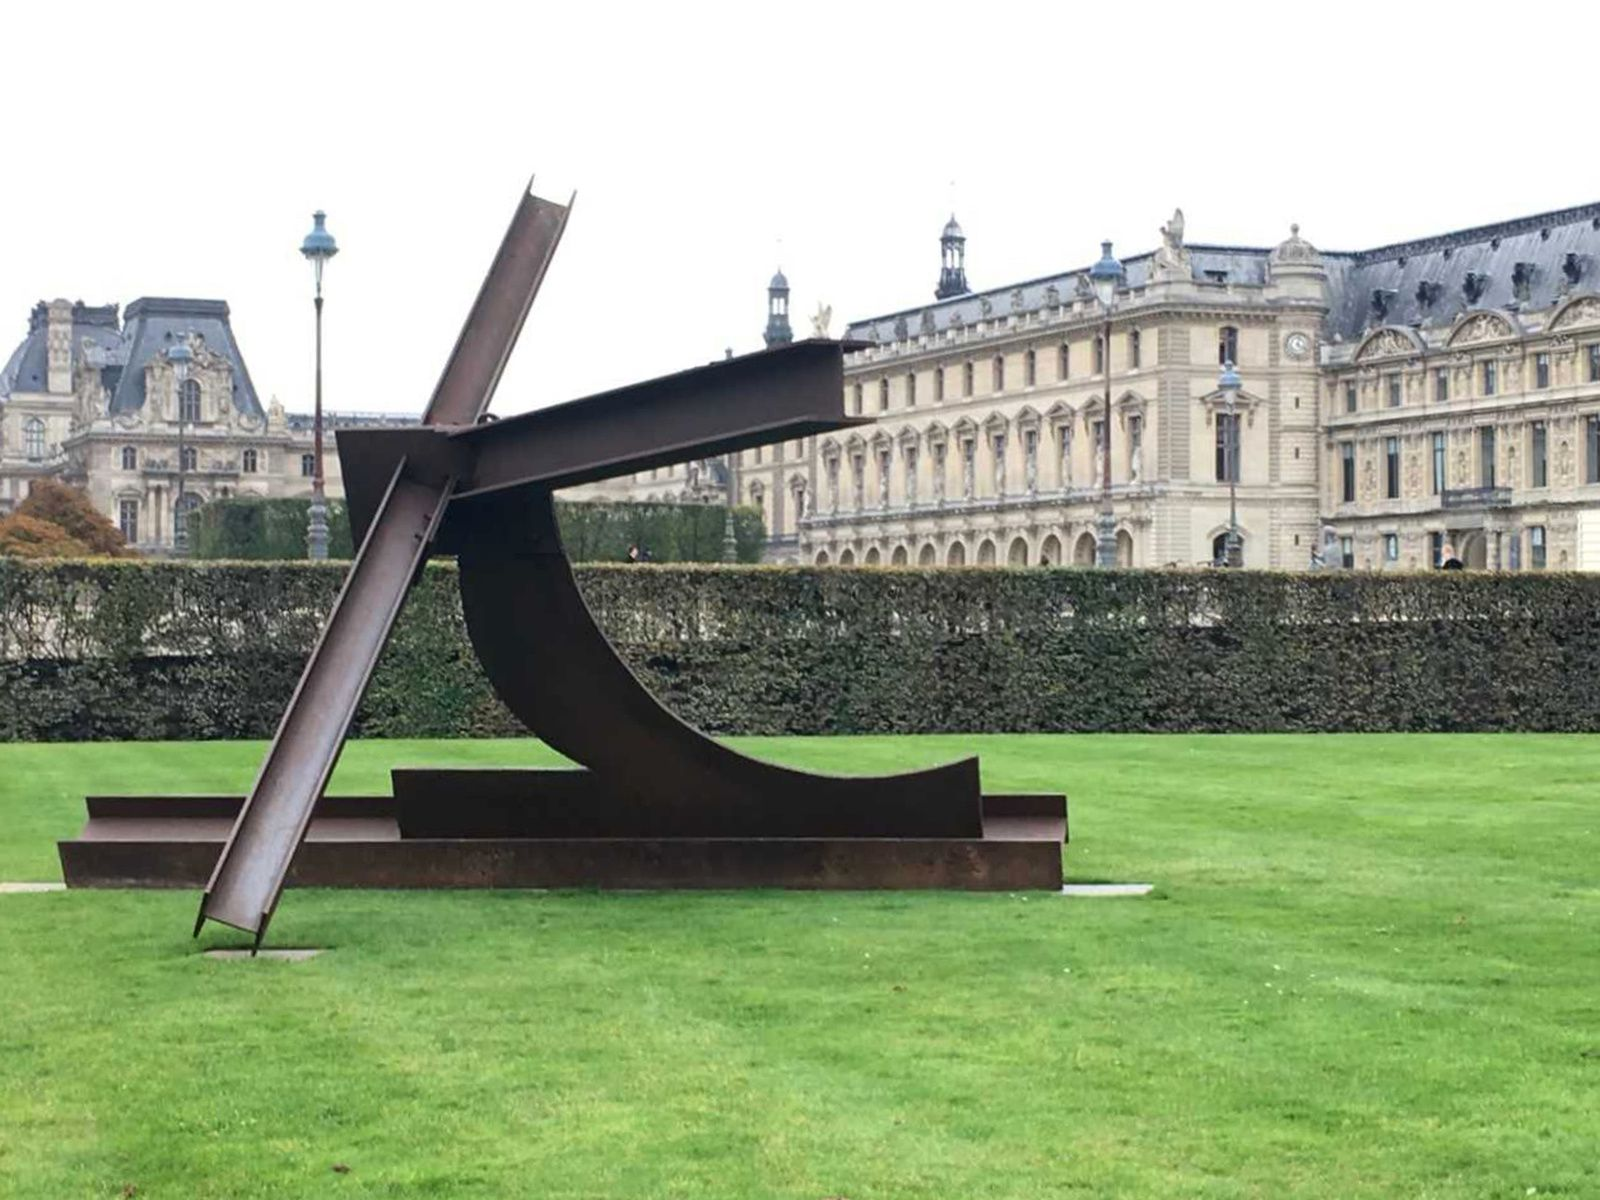 """Nelly"", 1986 de Mark DI SUVERO - Courtesy galerie Mitterand, Paris and Paula Cooper Gallery, New York © Photo Éric Simon"